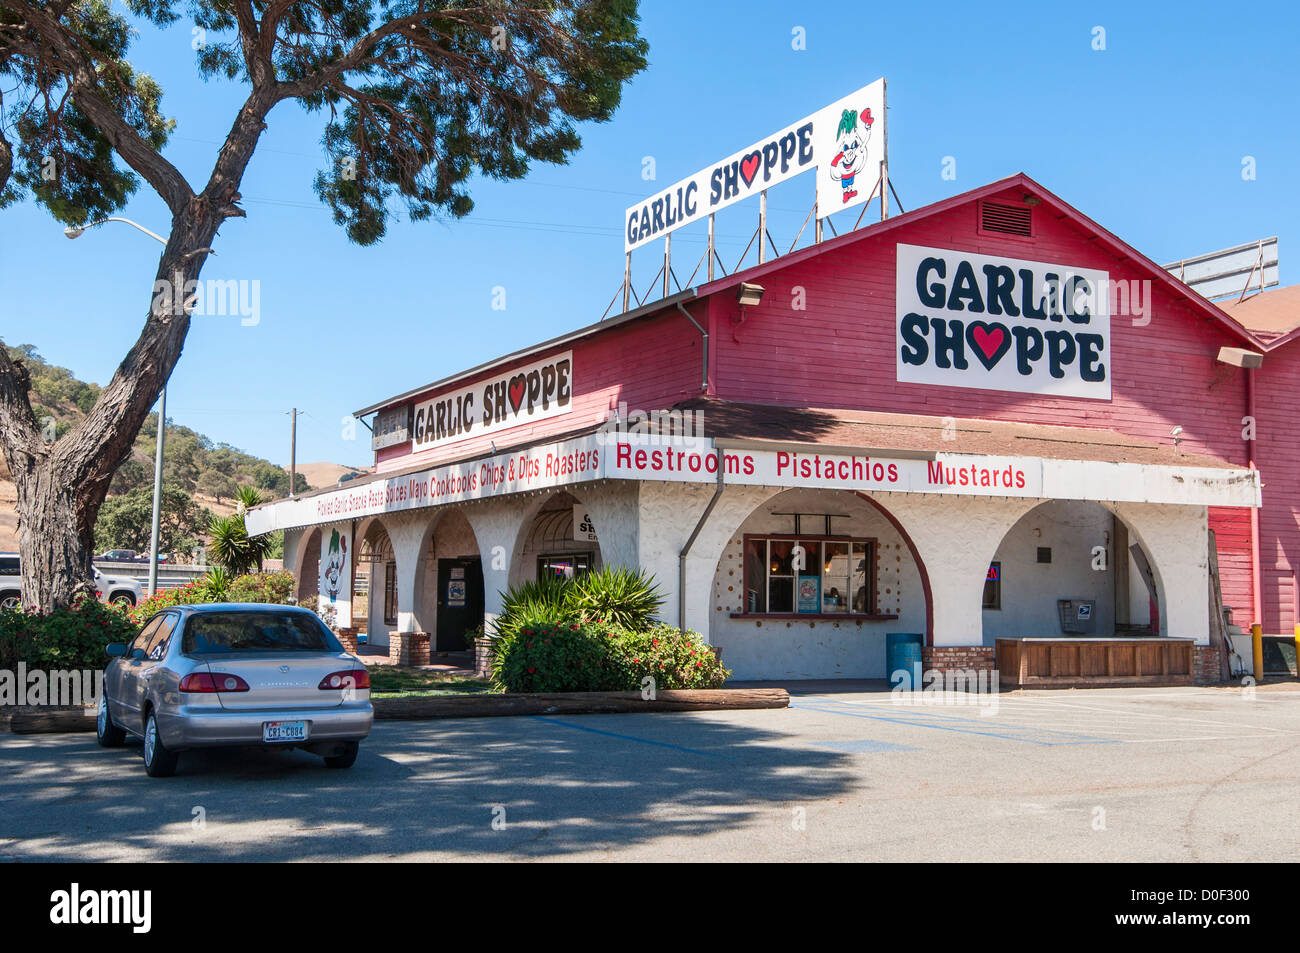 Specialty and gourmet food products sold in this store located in the garlic capital of the world, Gilroy, California. - Stock Image